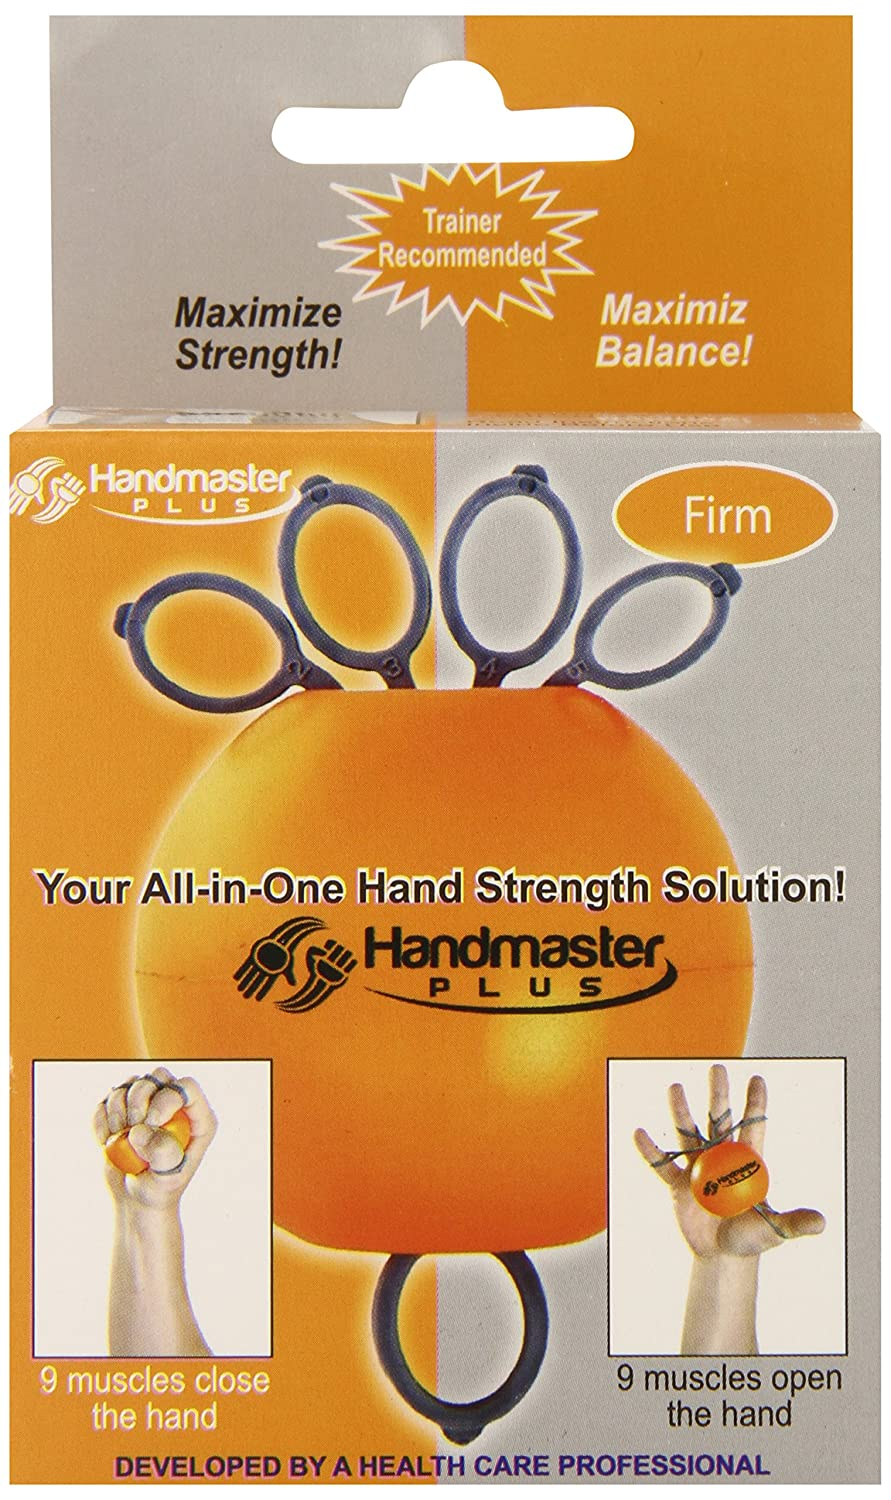 09356311f4c1c Handmaster Plus Physical Therapy Hand Exerciser, Firm